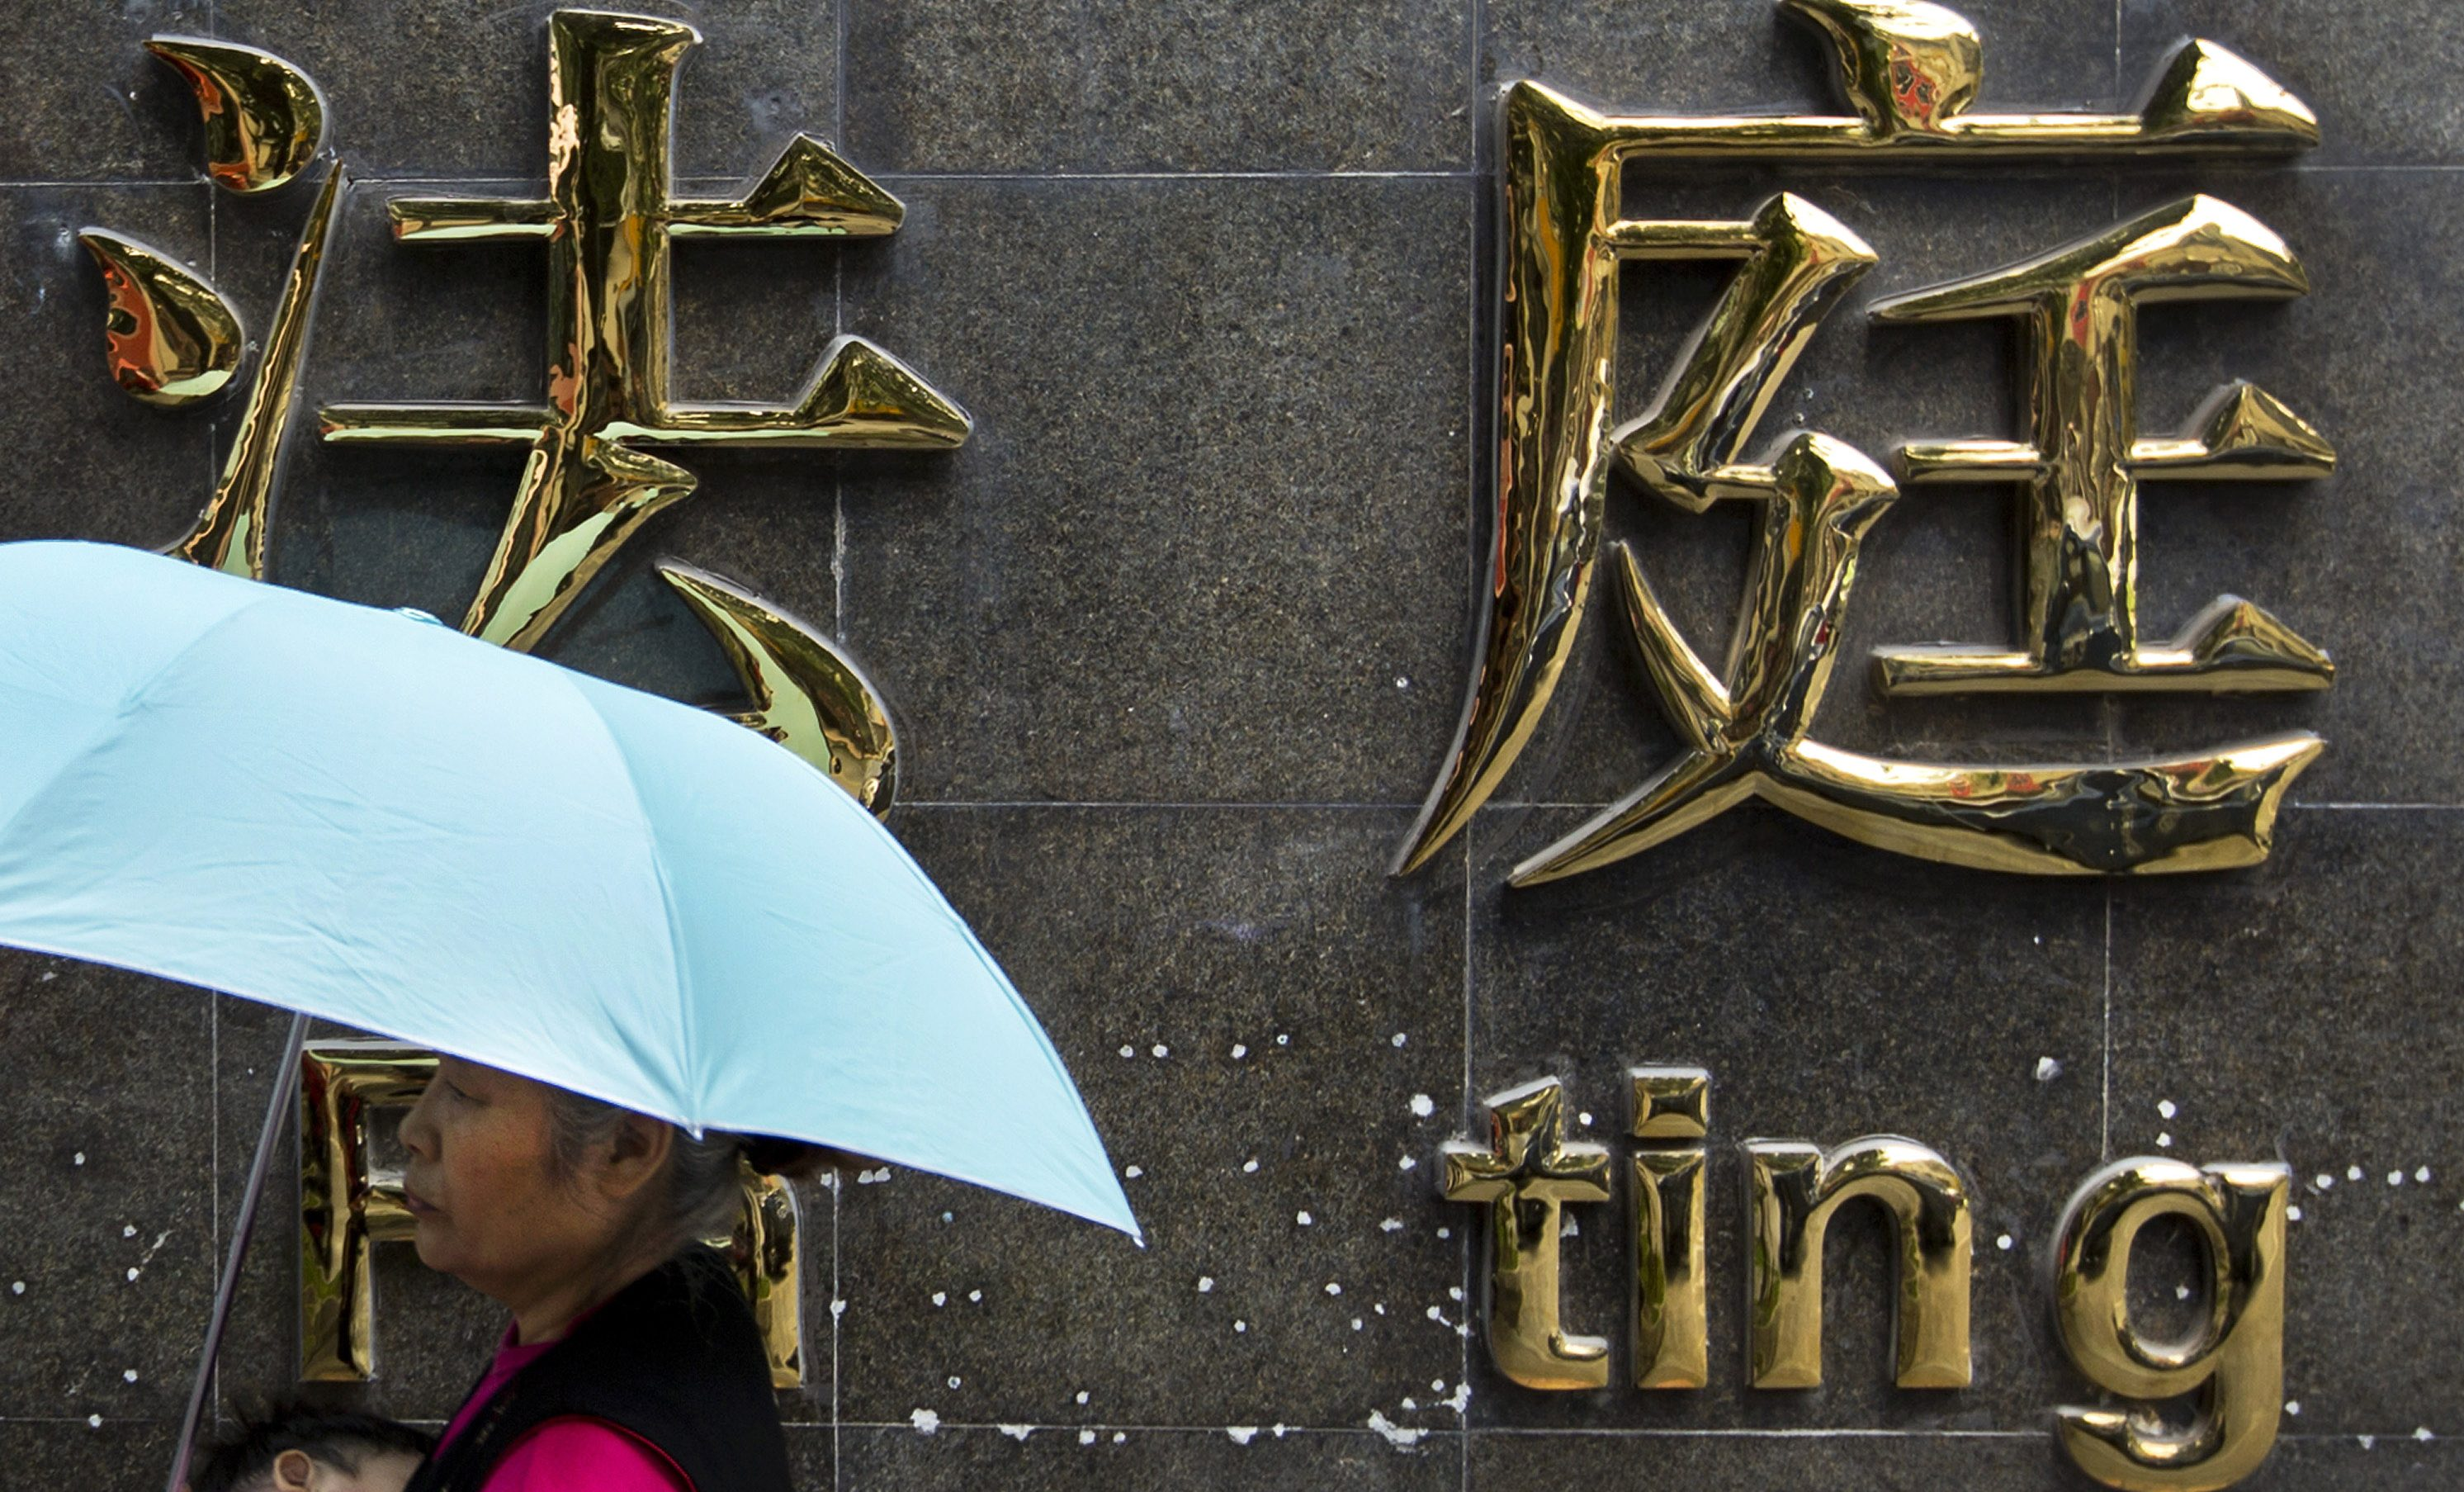 A woman carrying an infant walks past the Chengdu Intermediate Court in Sichuan, Sept. 23, 2012.